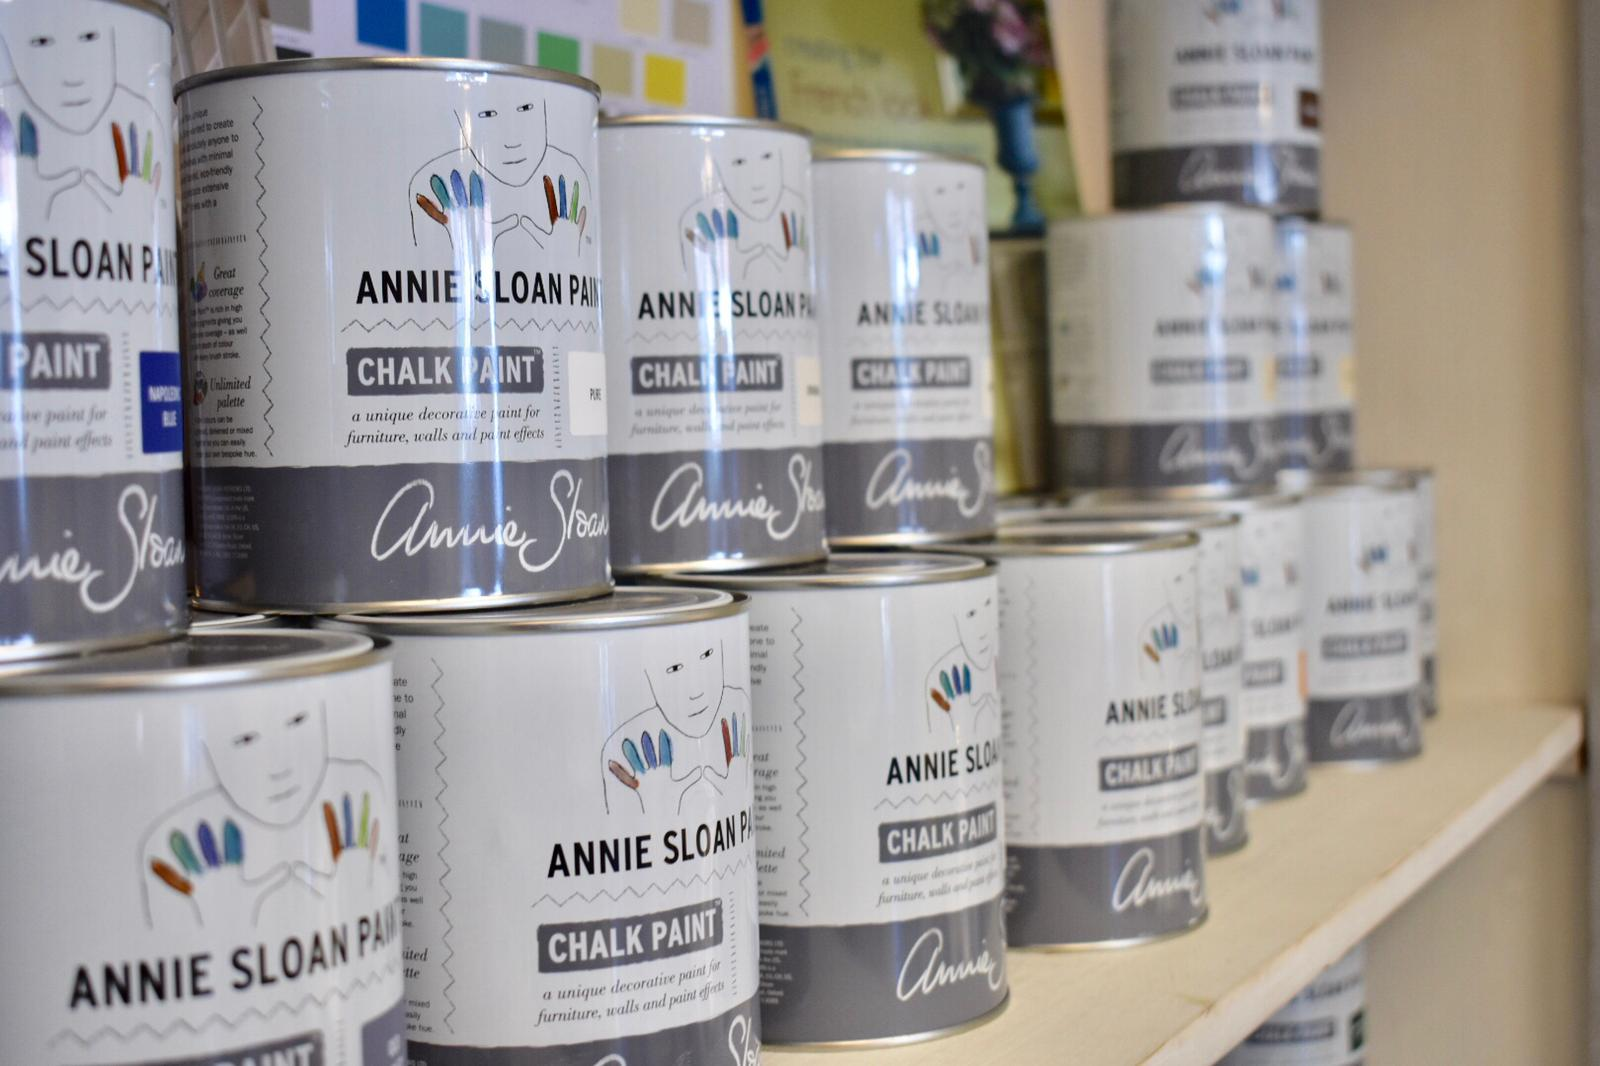 We are Official Stockists of Annie Sloan Chalk Paint so your colour options are endless!